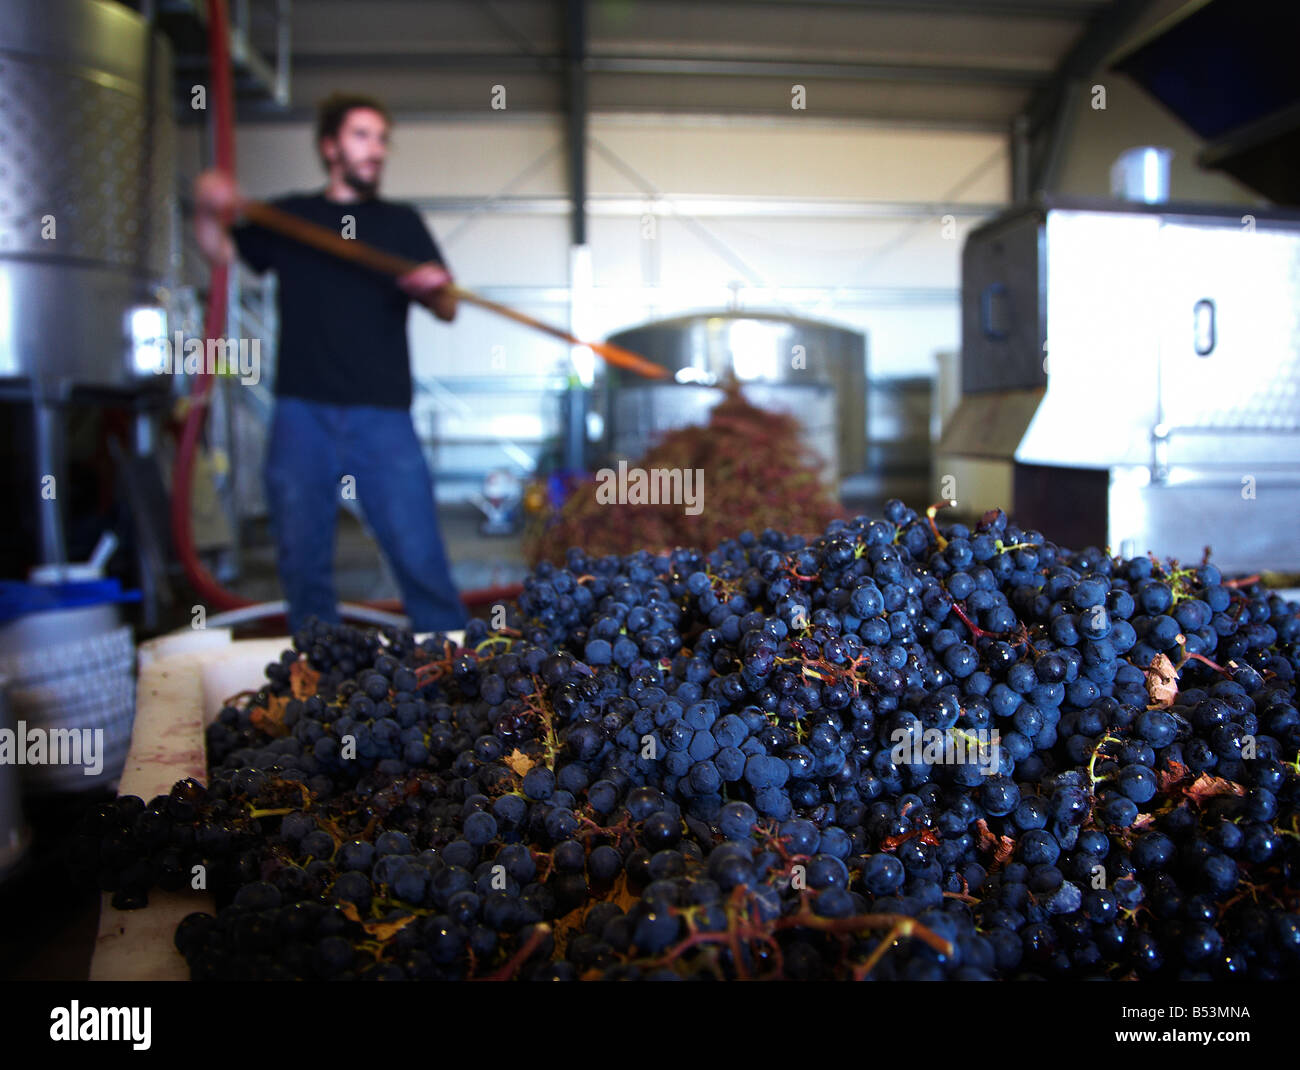 man working in vineyard seperating stems from grapes - Stock Image